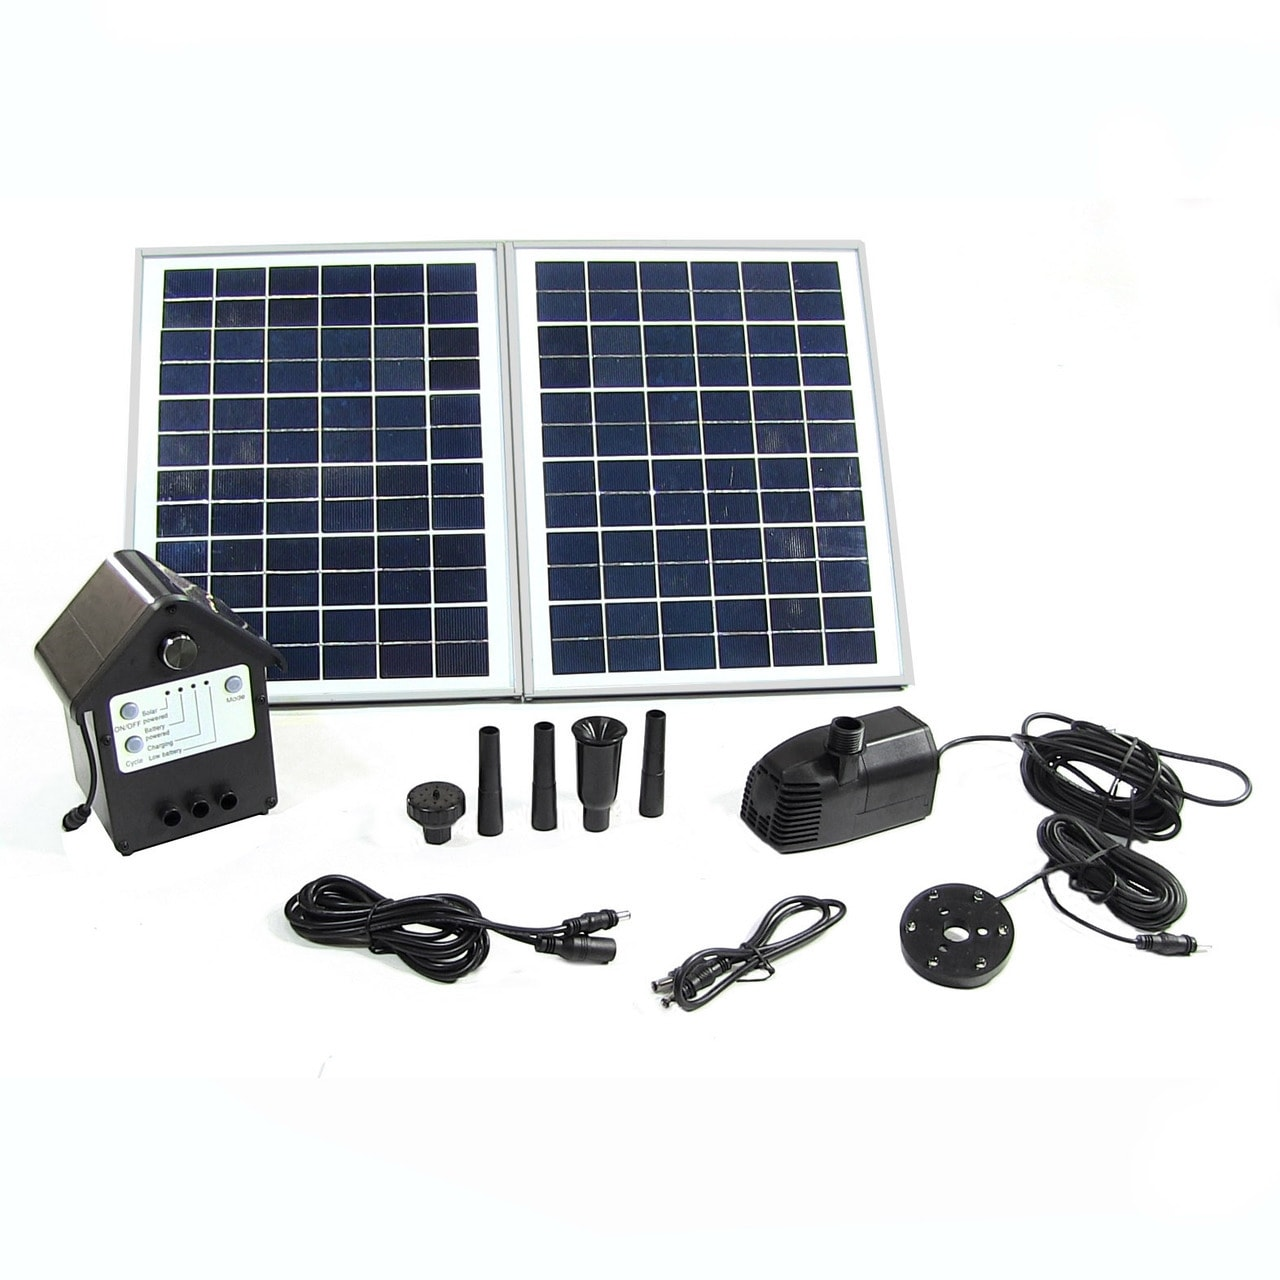 Sunnydaze Solar Pump and Solar Panel Kit With Battery Pack and LED Light with 11 - Black - Thumbnail 0